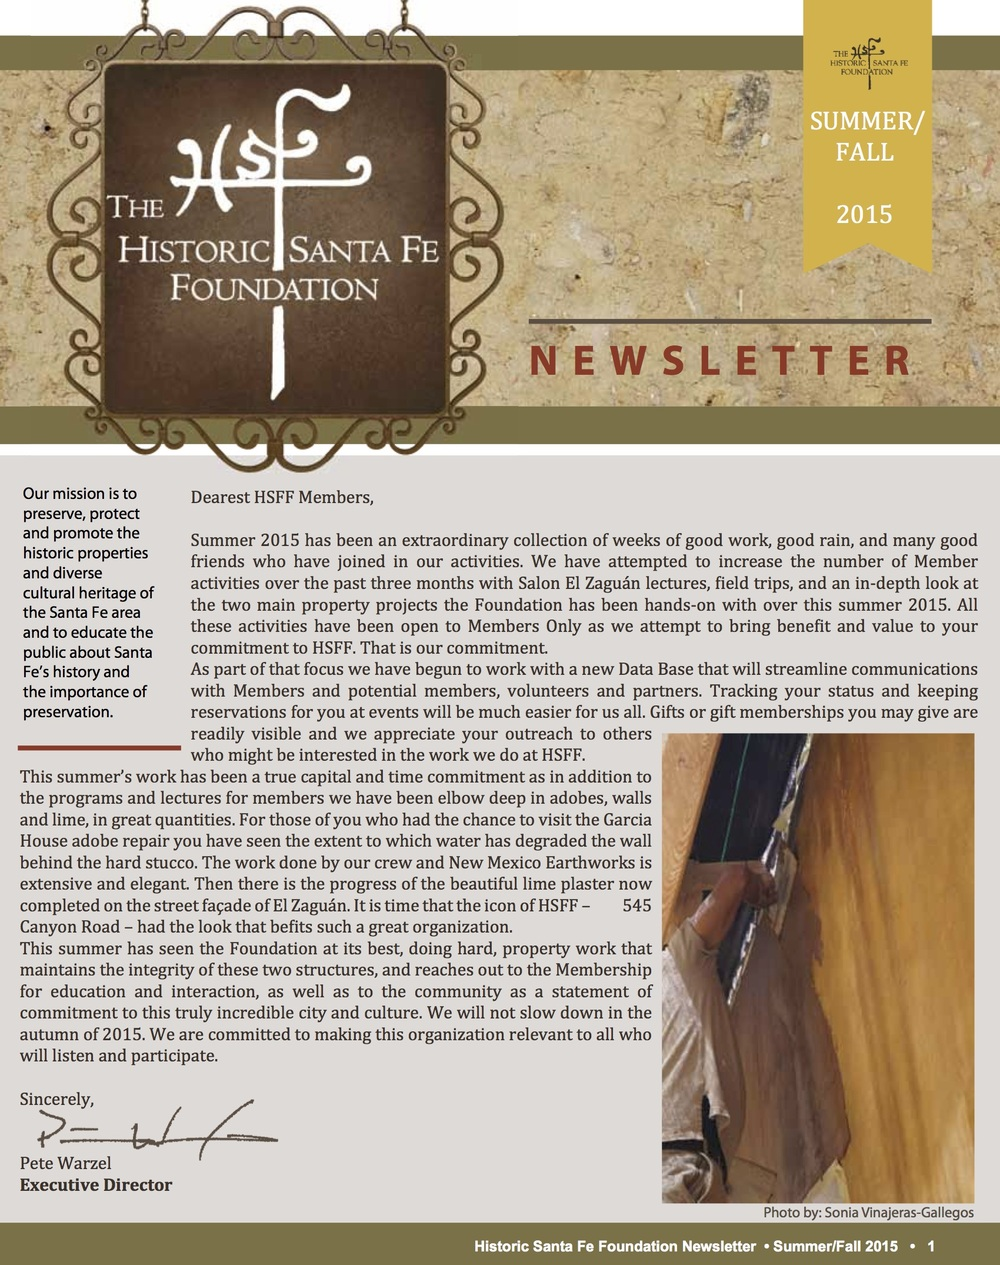 HSFF-newsletter-summer-fall2015cover.jpg